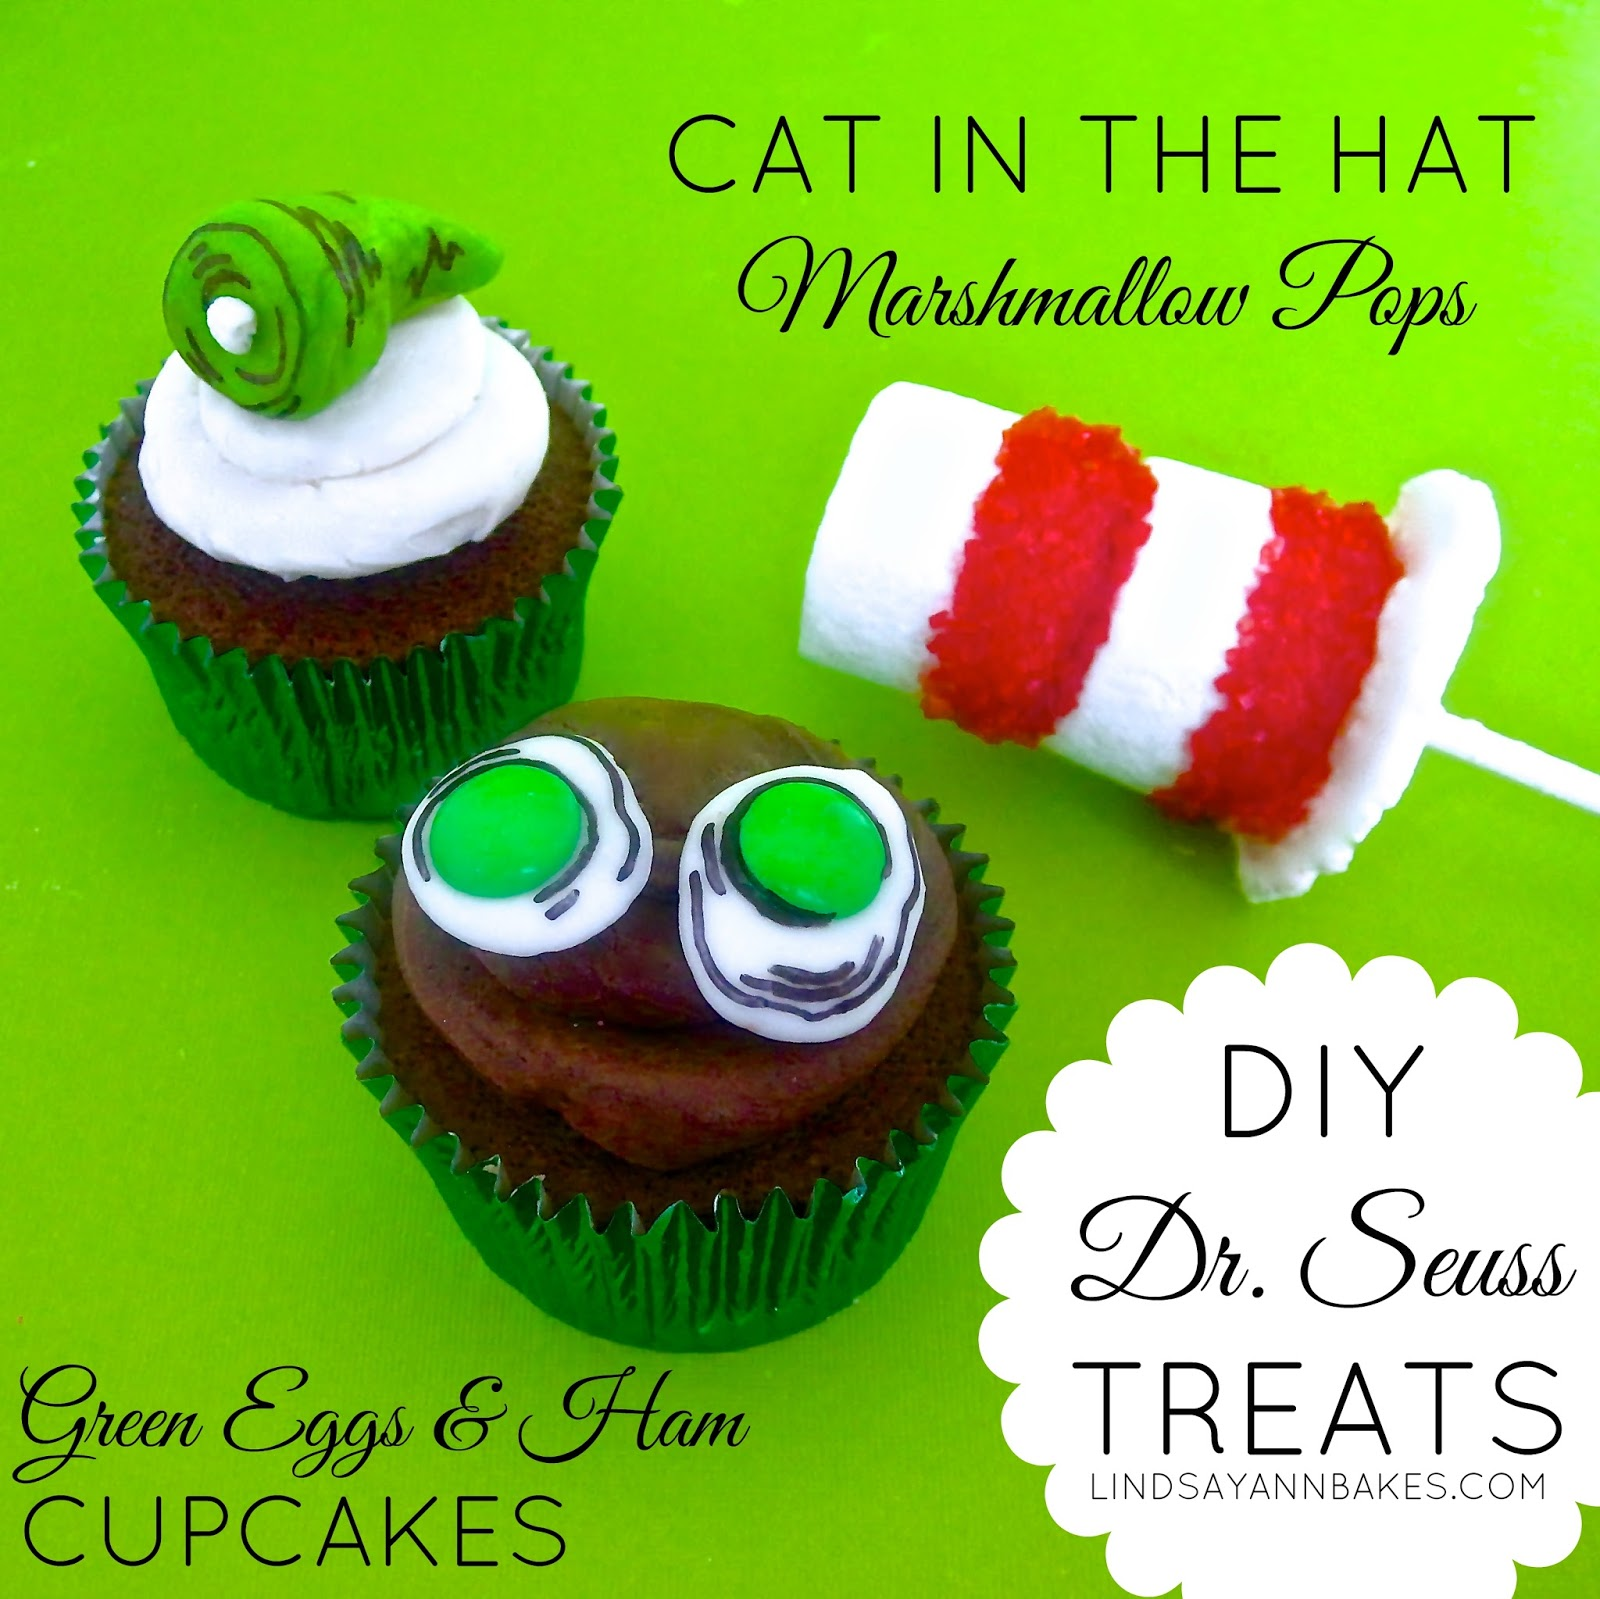 Swell Diy Dr Seuss Treats Green Eggs Ham Cupcakes Cat In The Hat Personalised Birthday Cards Epsylily Jamesorg